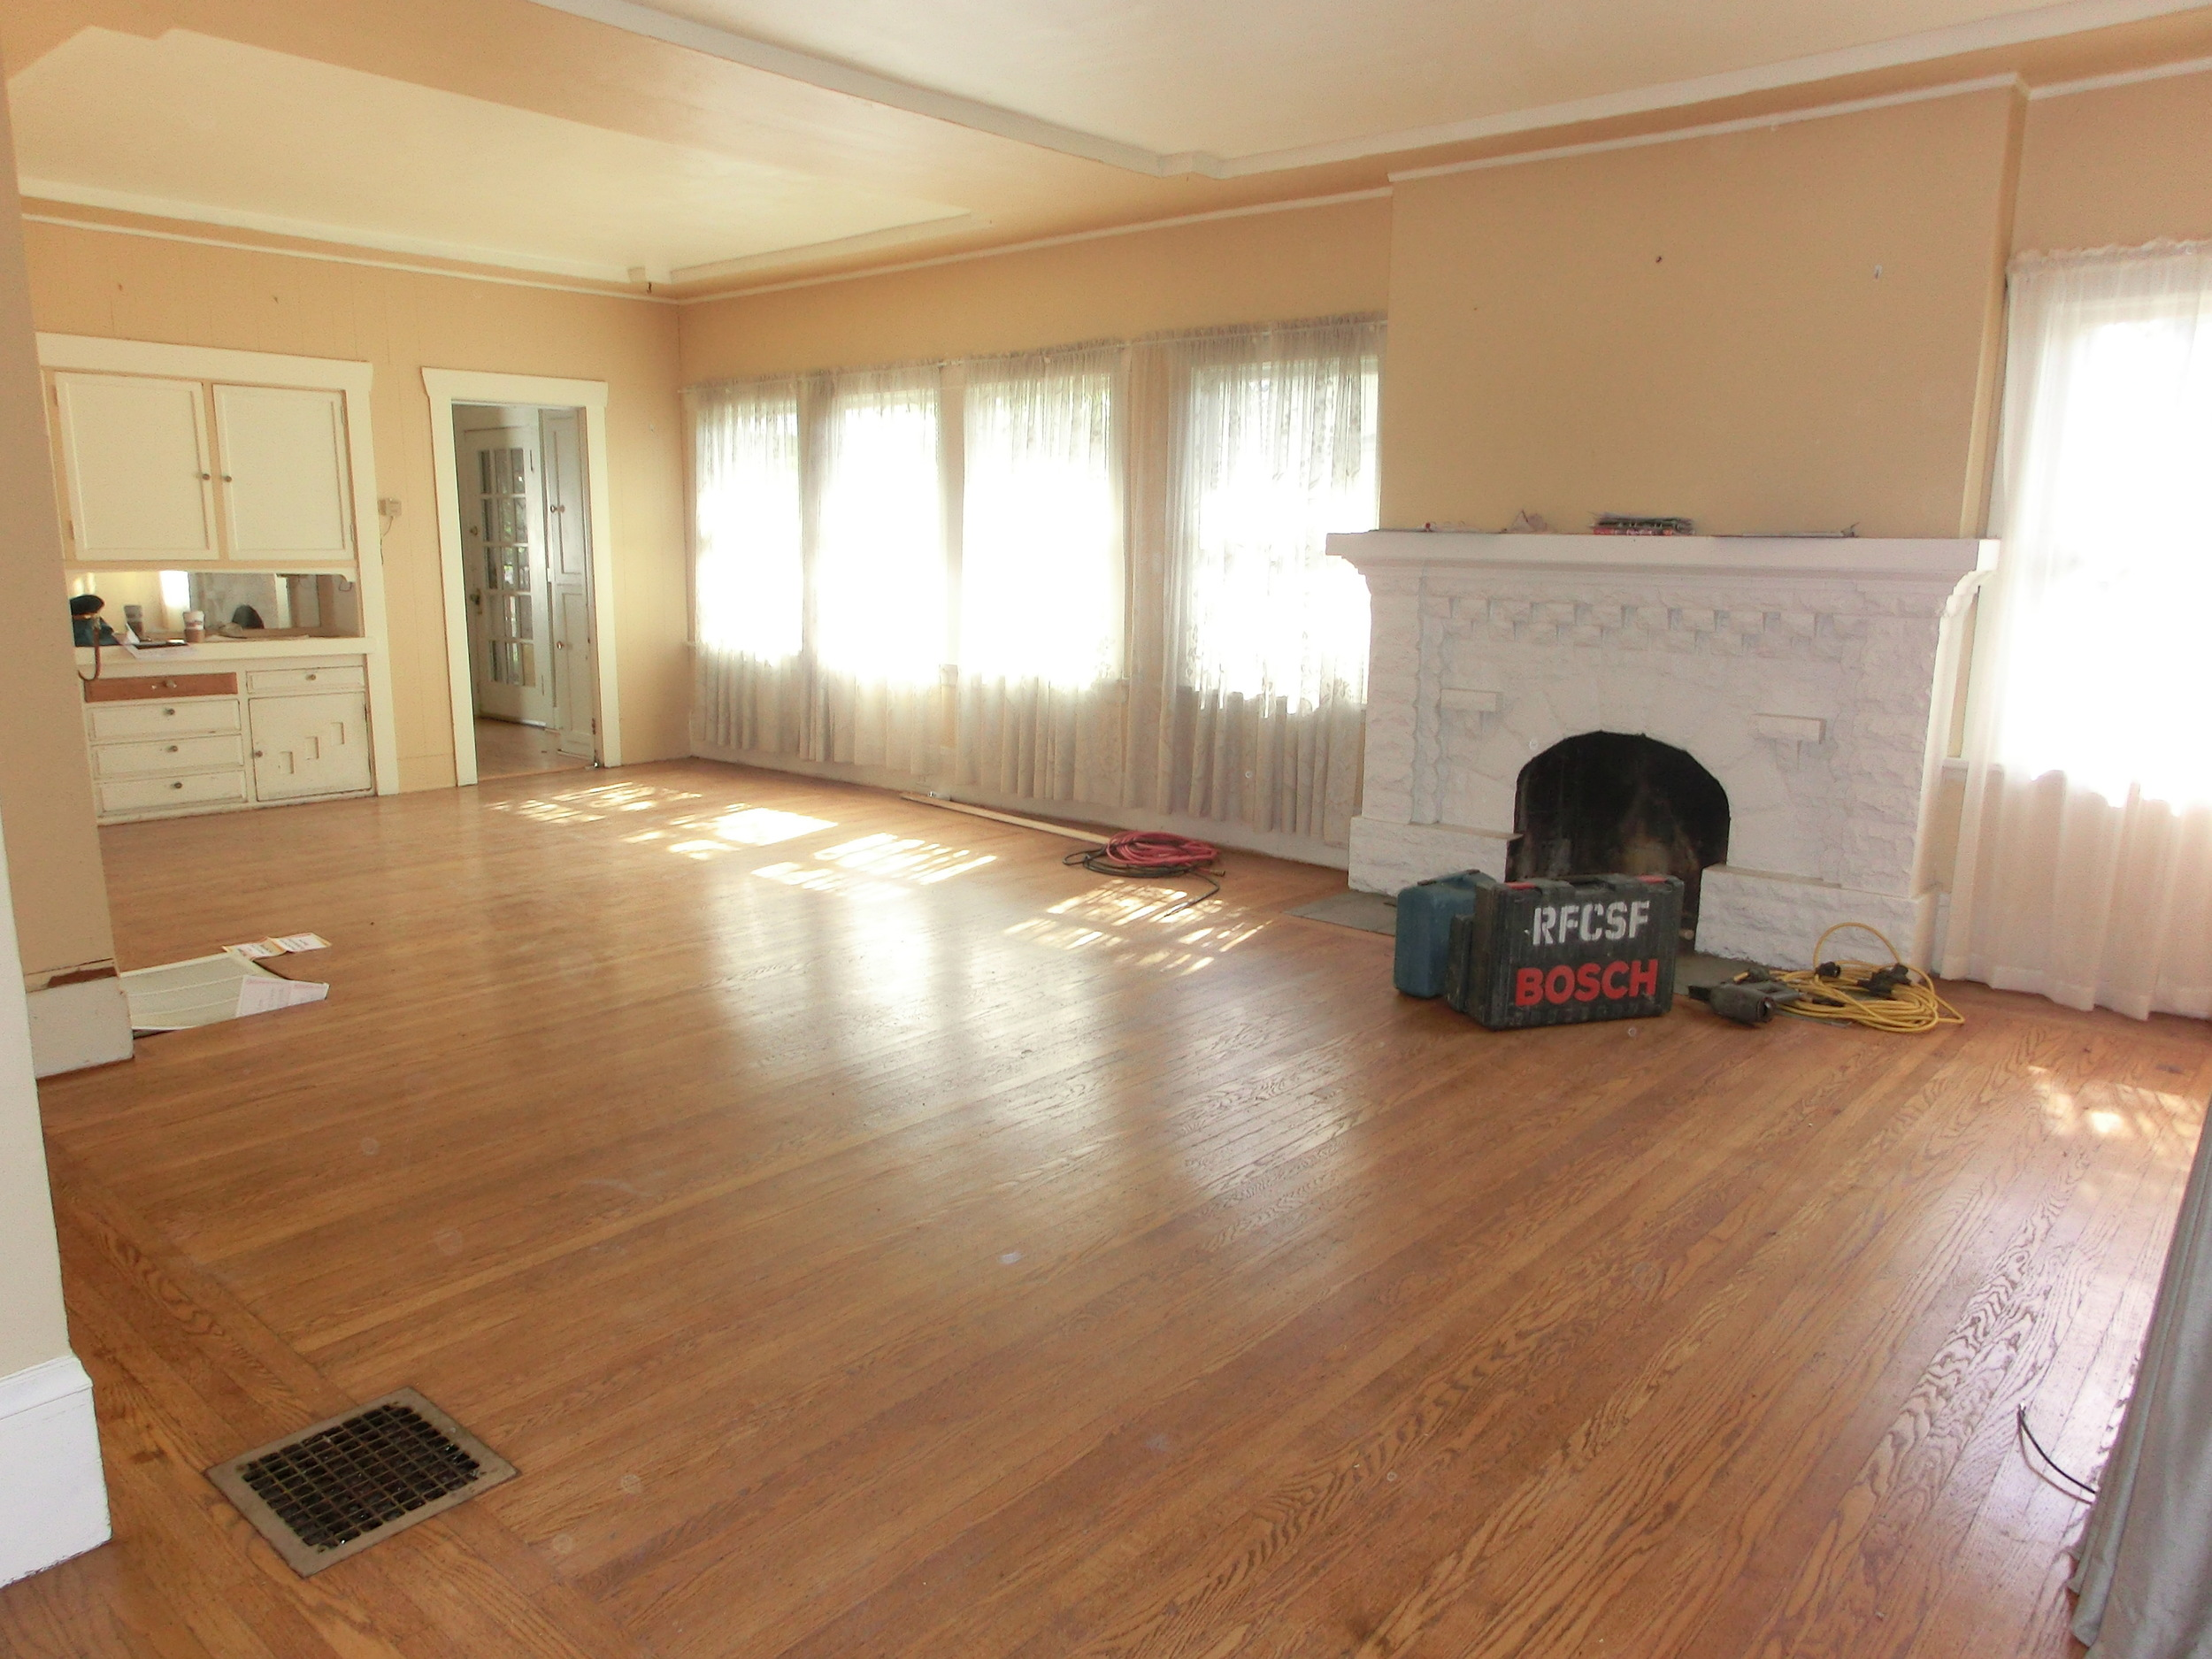 before and after staging in glenview, oakland ca